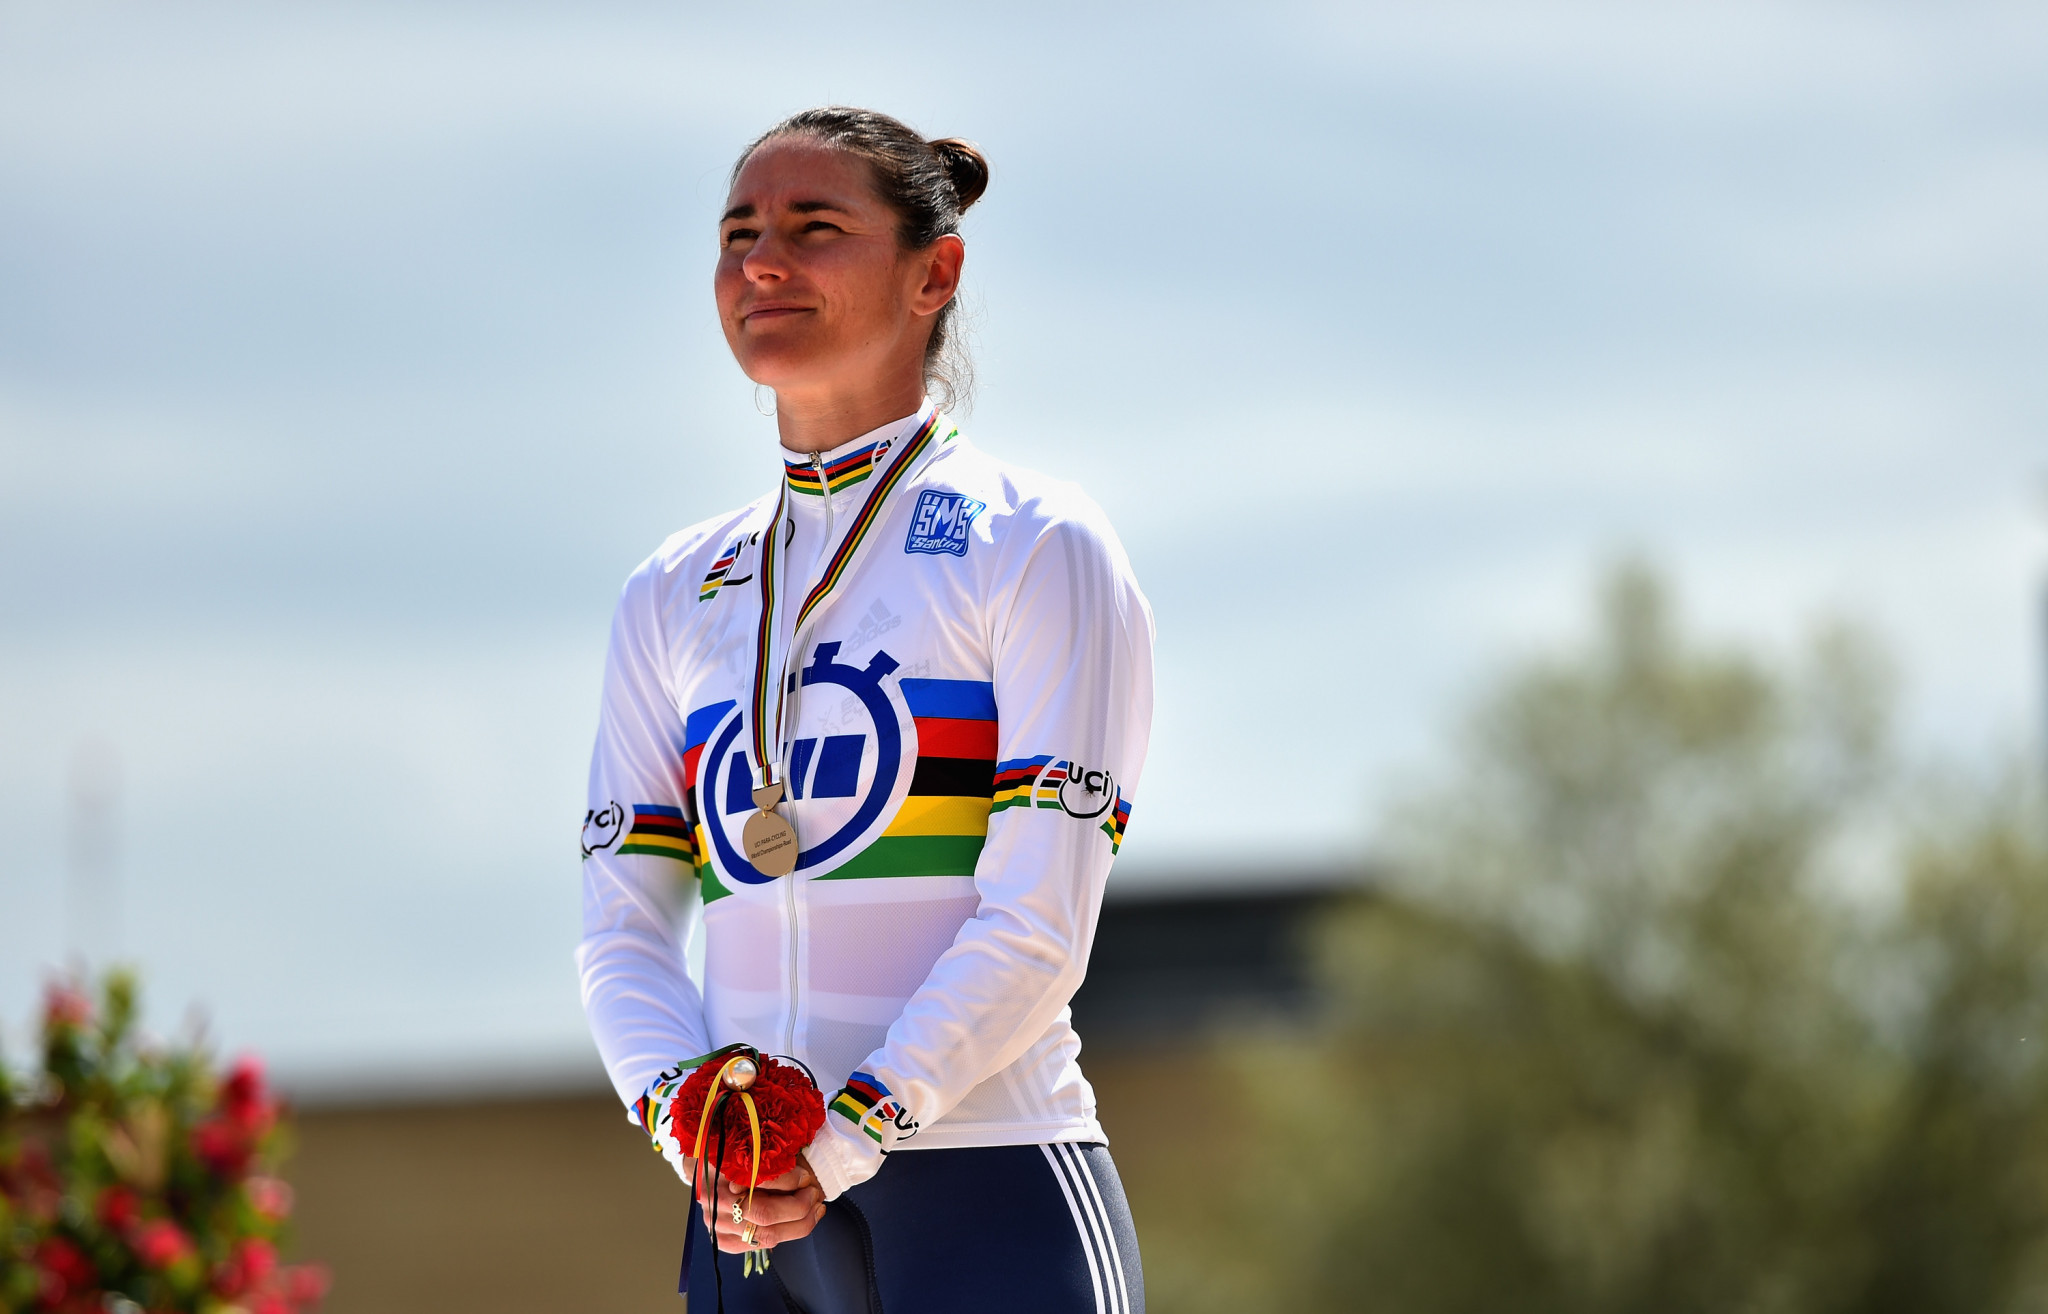 Storey secures 31st gold medal at Para Cycling Road World Championships